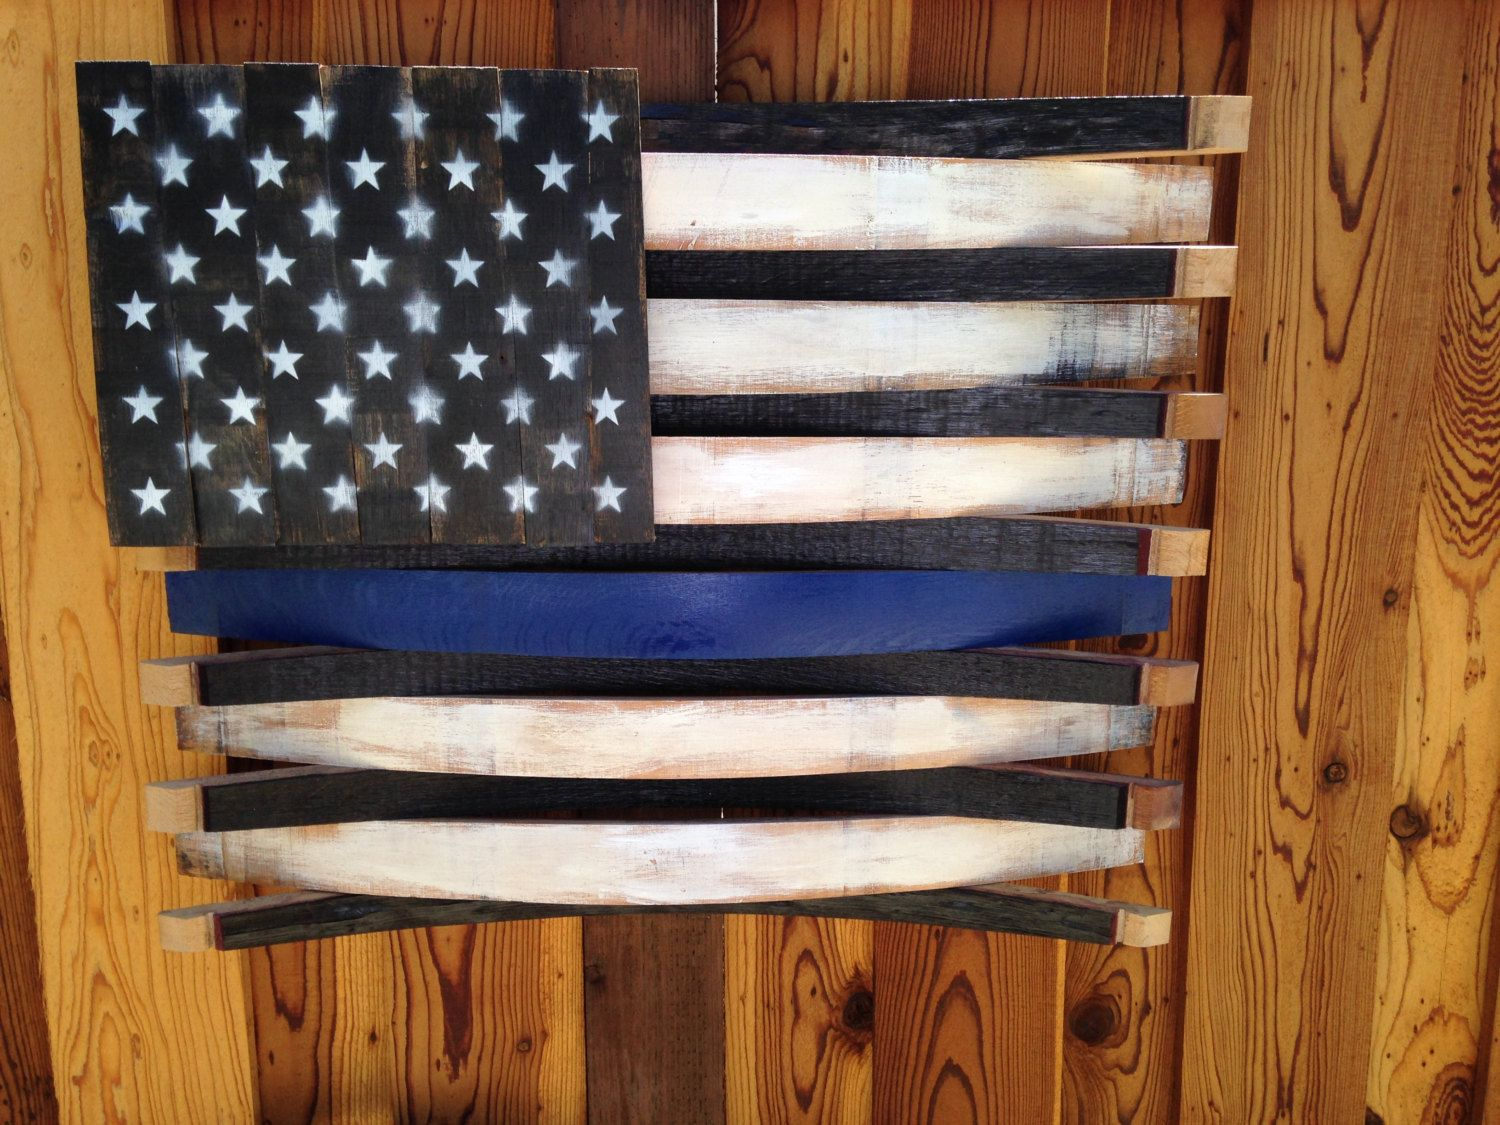 Wine Barrel Wall Art custom, handcrafted, rustic, hand painted, thin blue line american